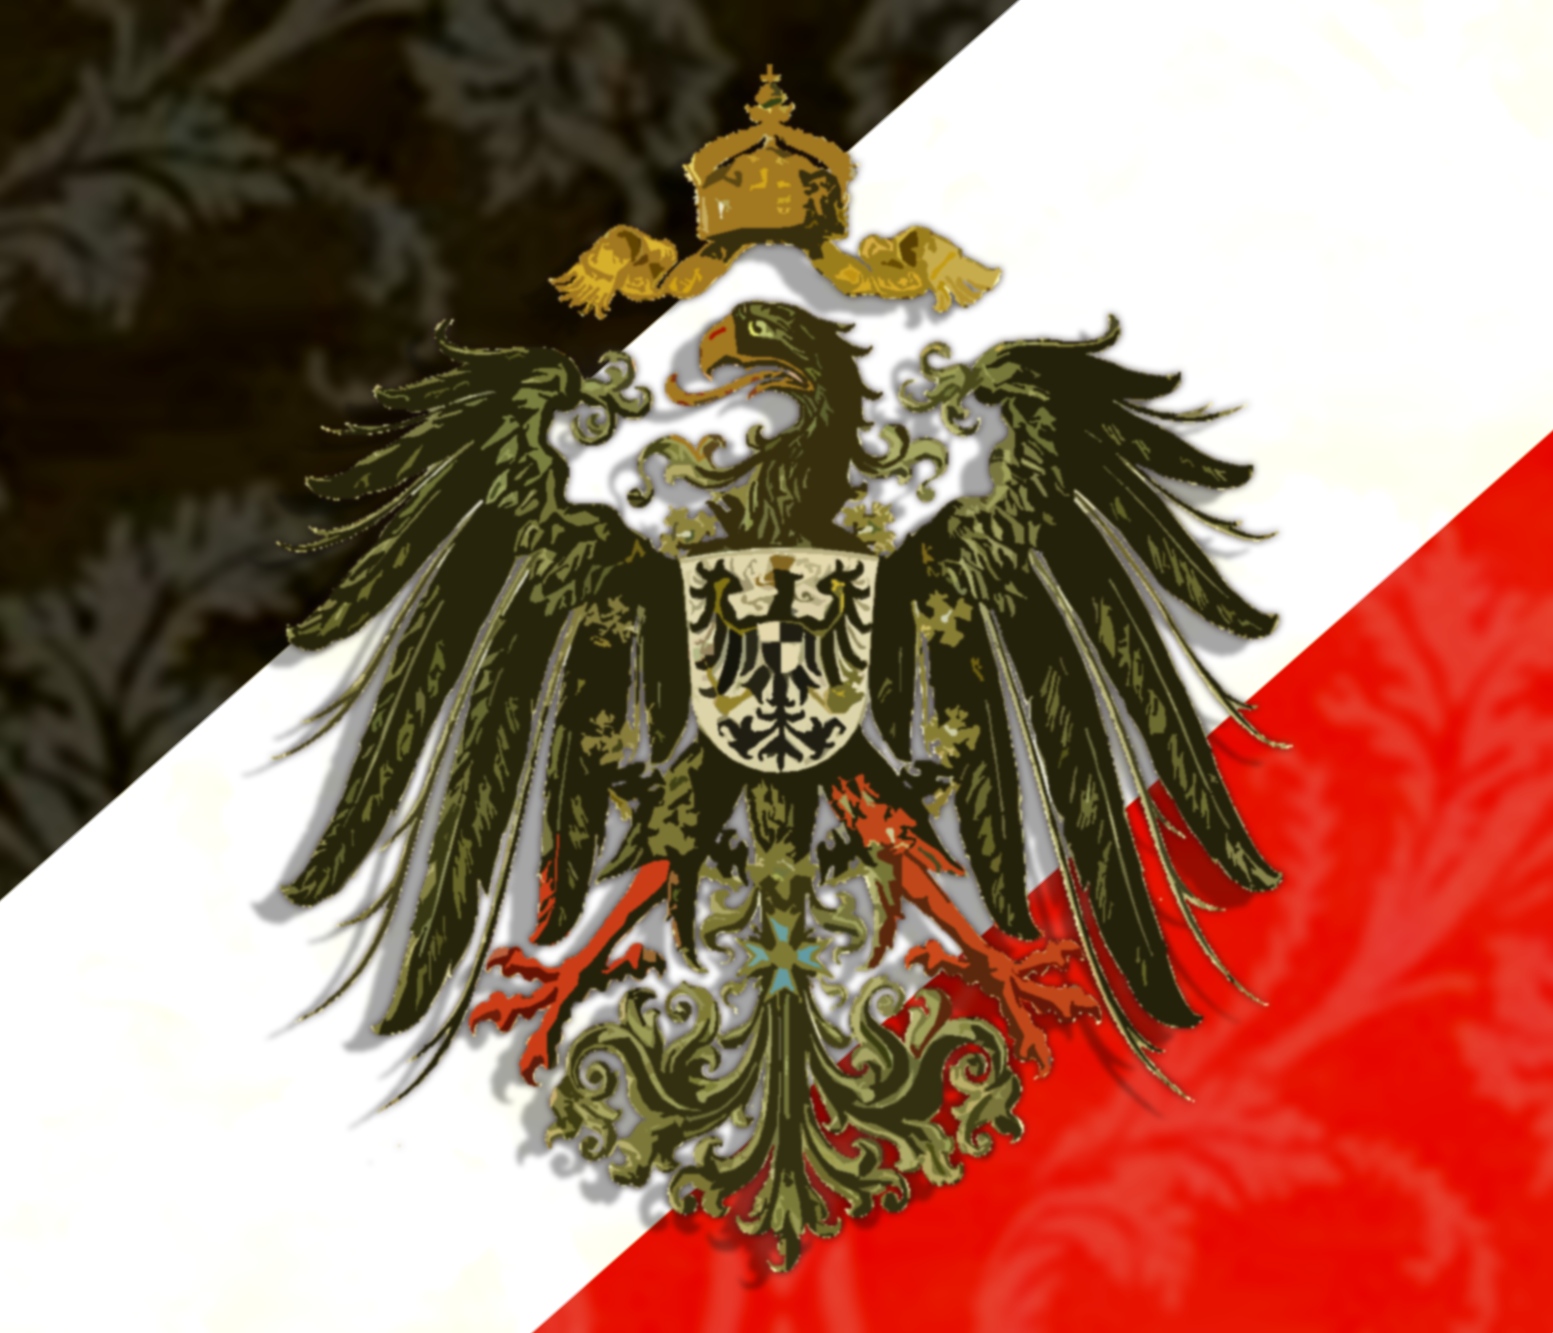 German Reichsadler by Arminius1871 on DeviantArt